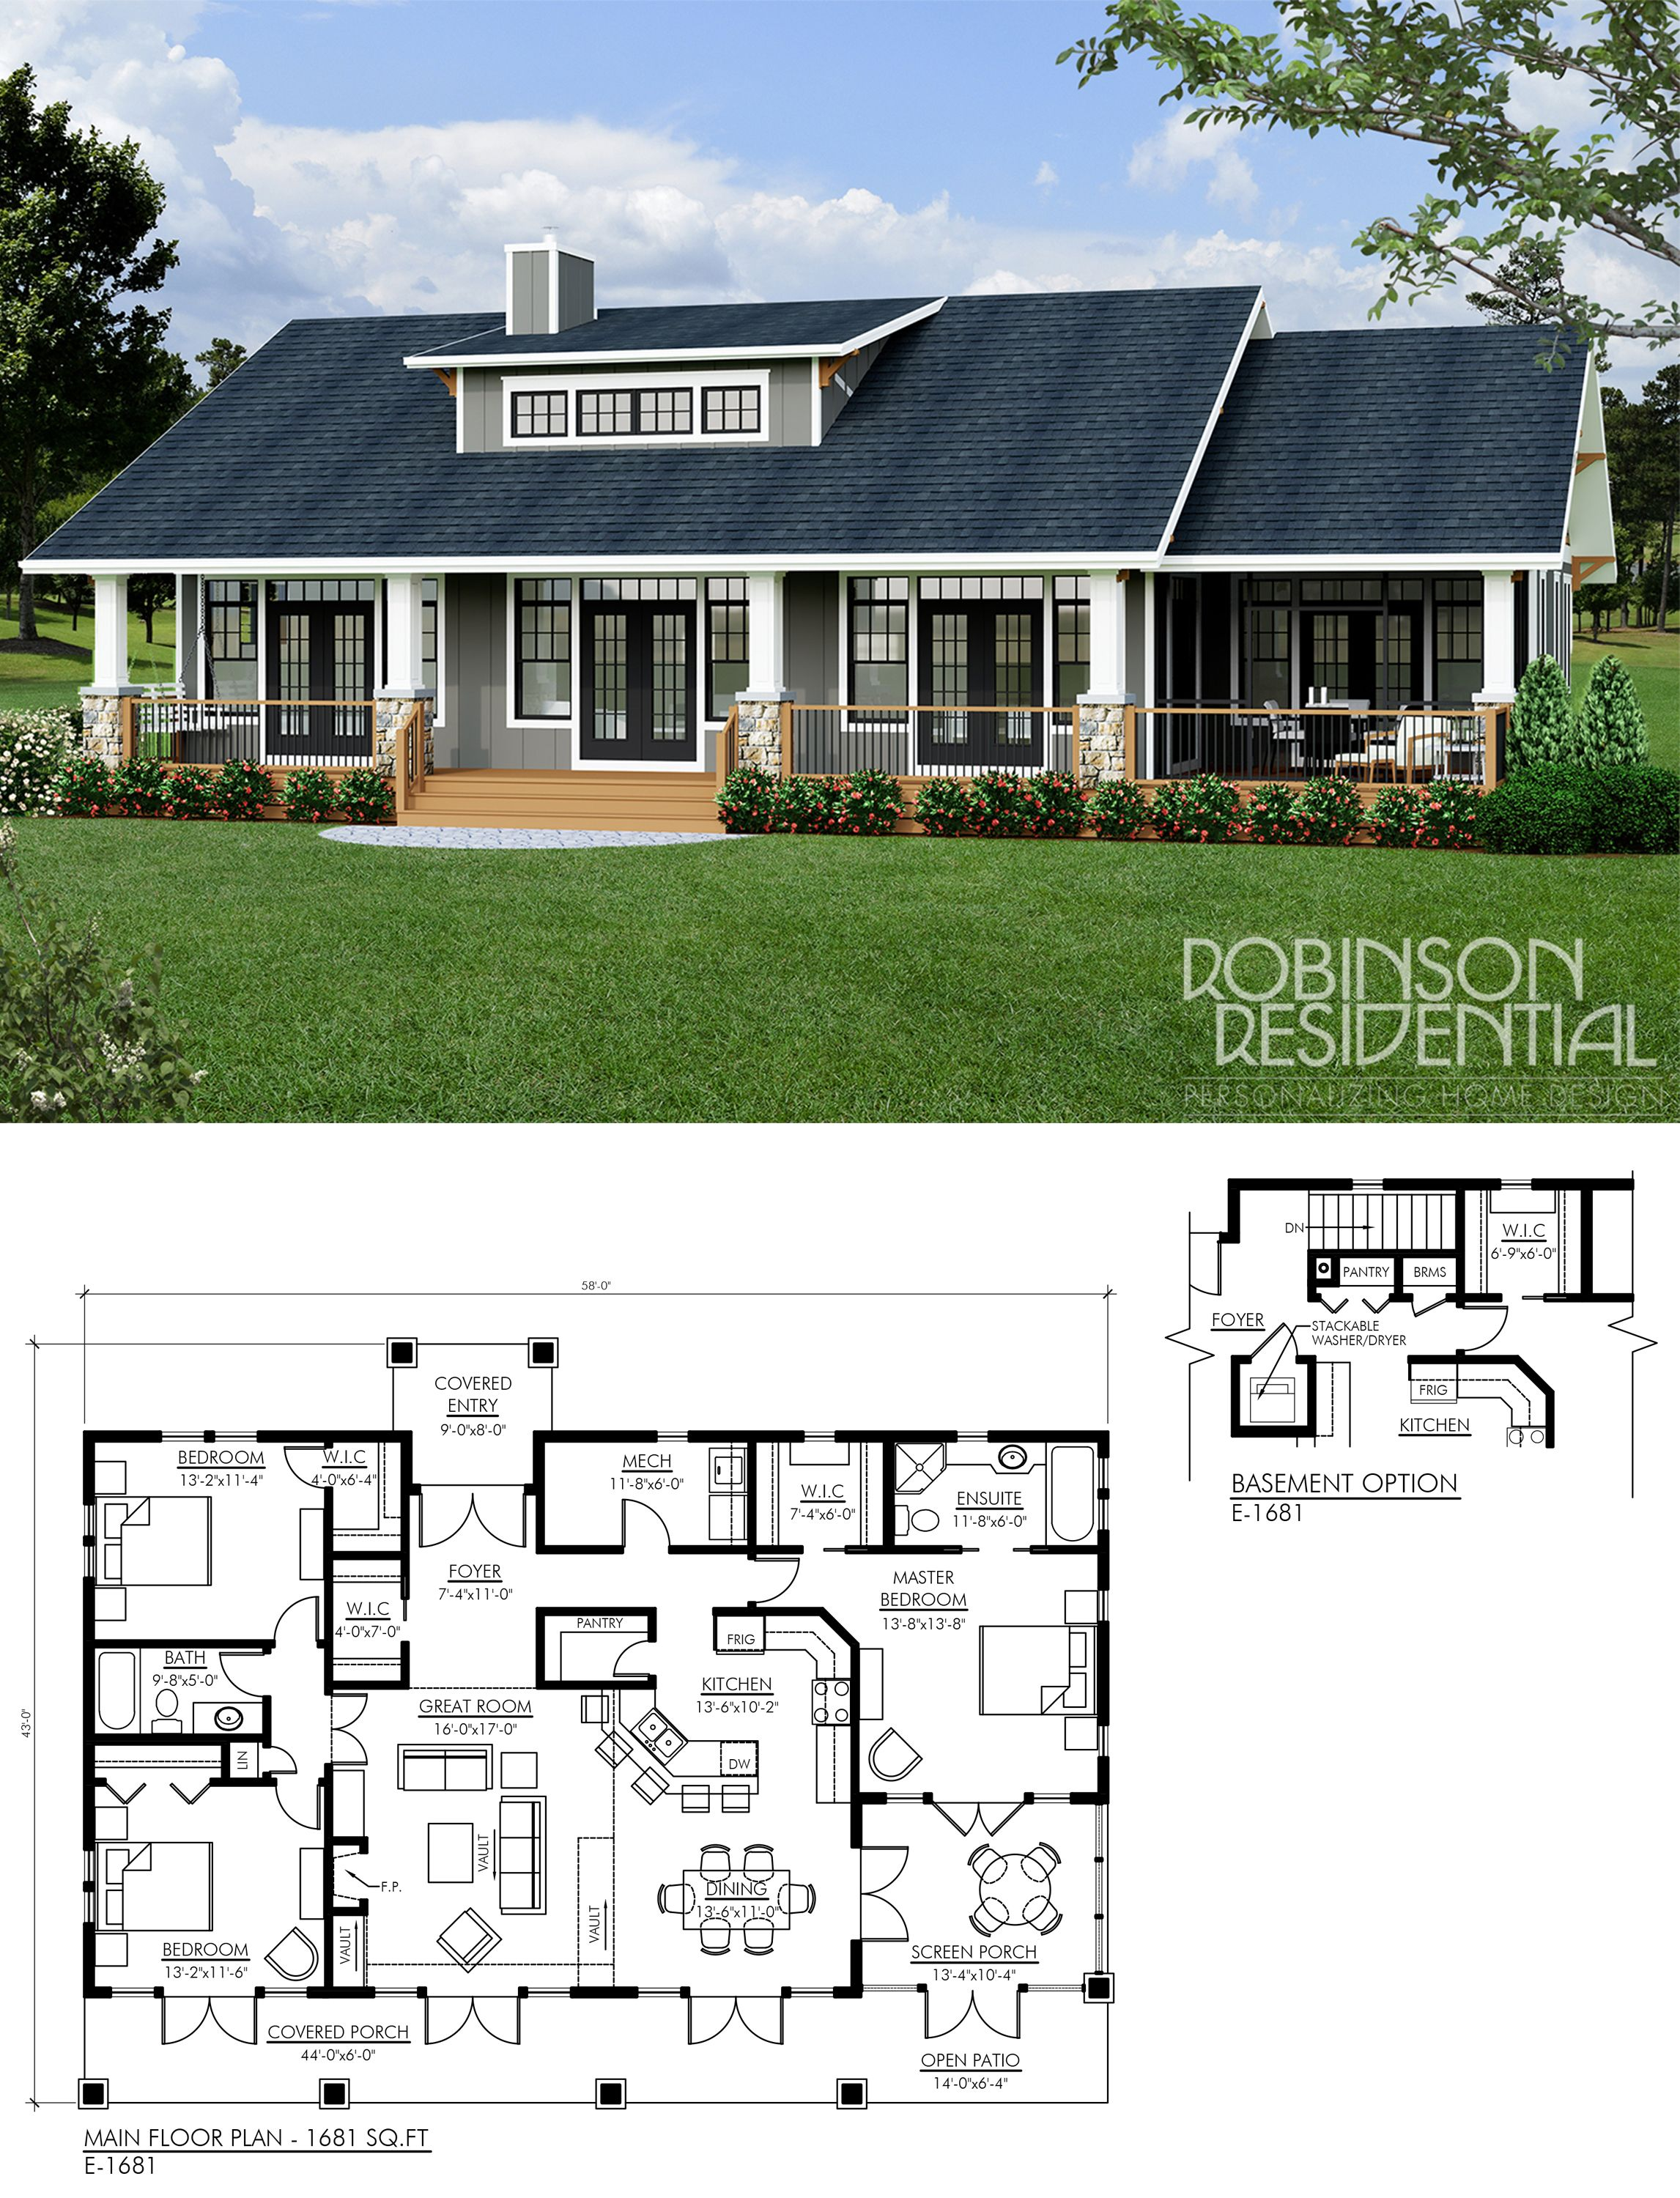 Craftsman E 1681 Robinson Plans Dream House Plans Bungalow House Plans New House Plans